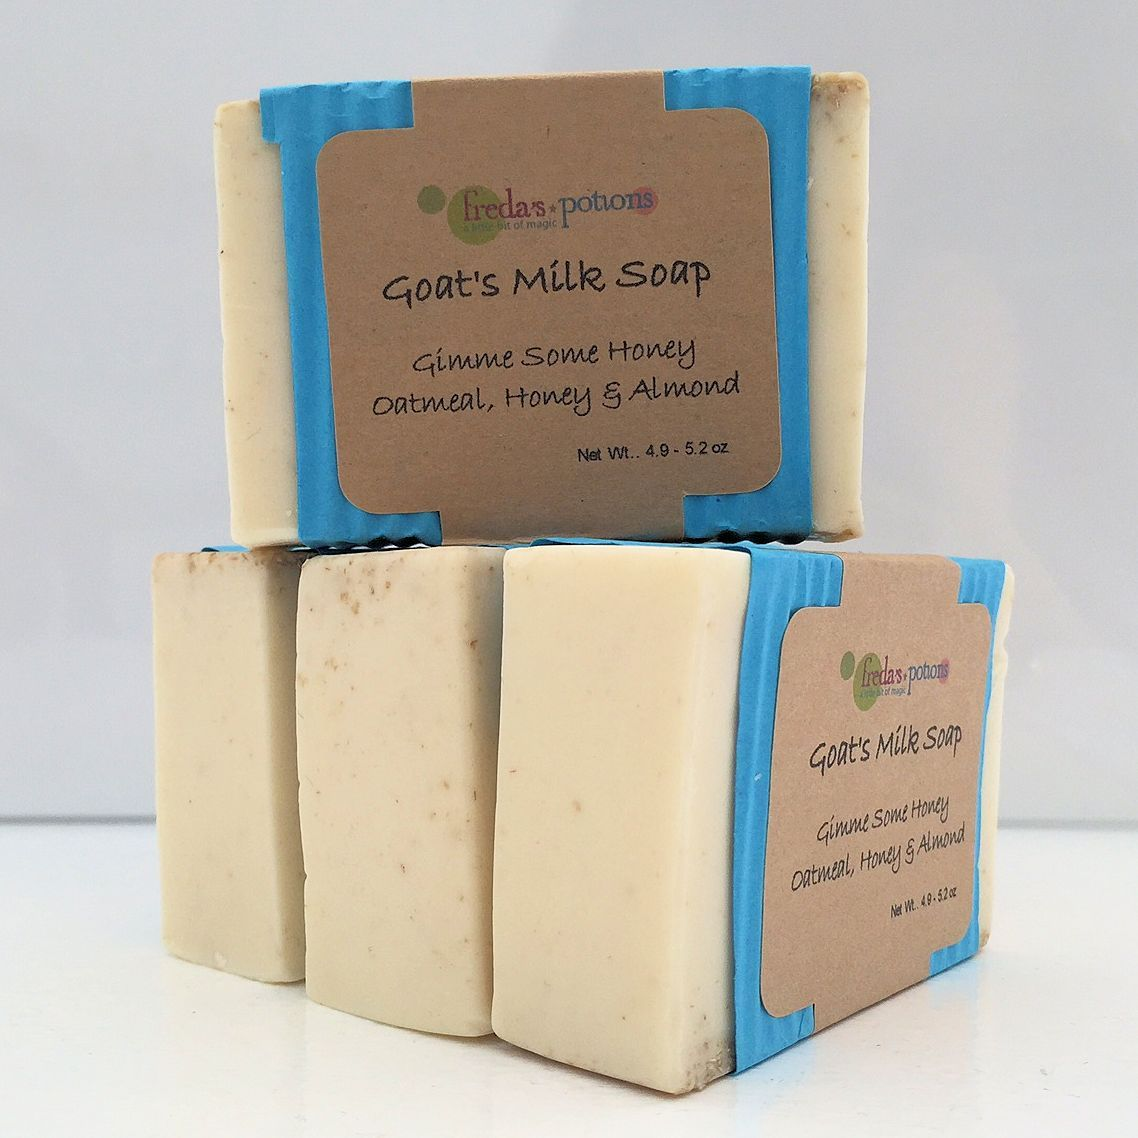 Gimme Some Honey Goat's Milk Soap uses our base soap with an addition of ground oatmeal and honey. The soap is very soothing for the skin.